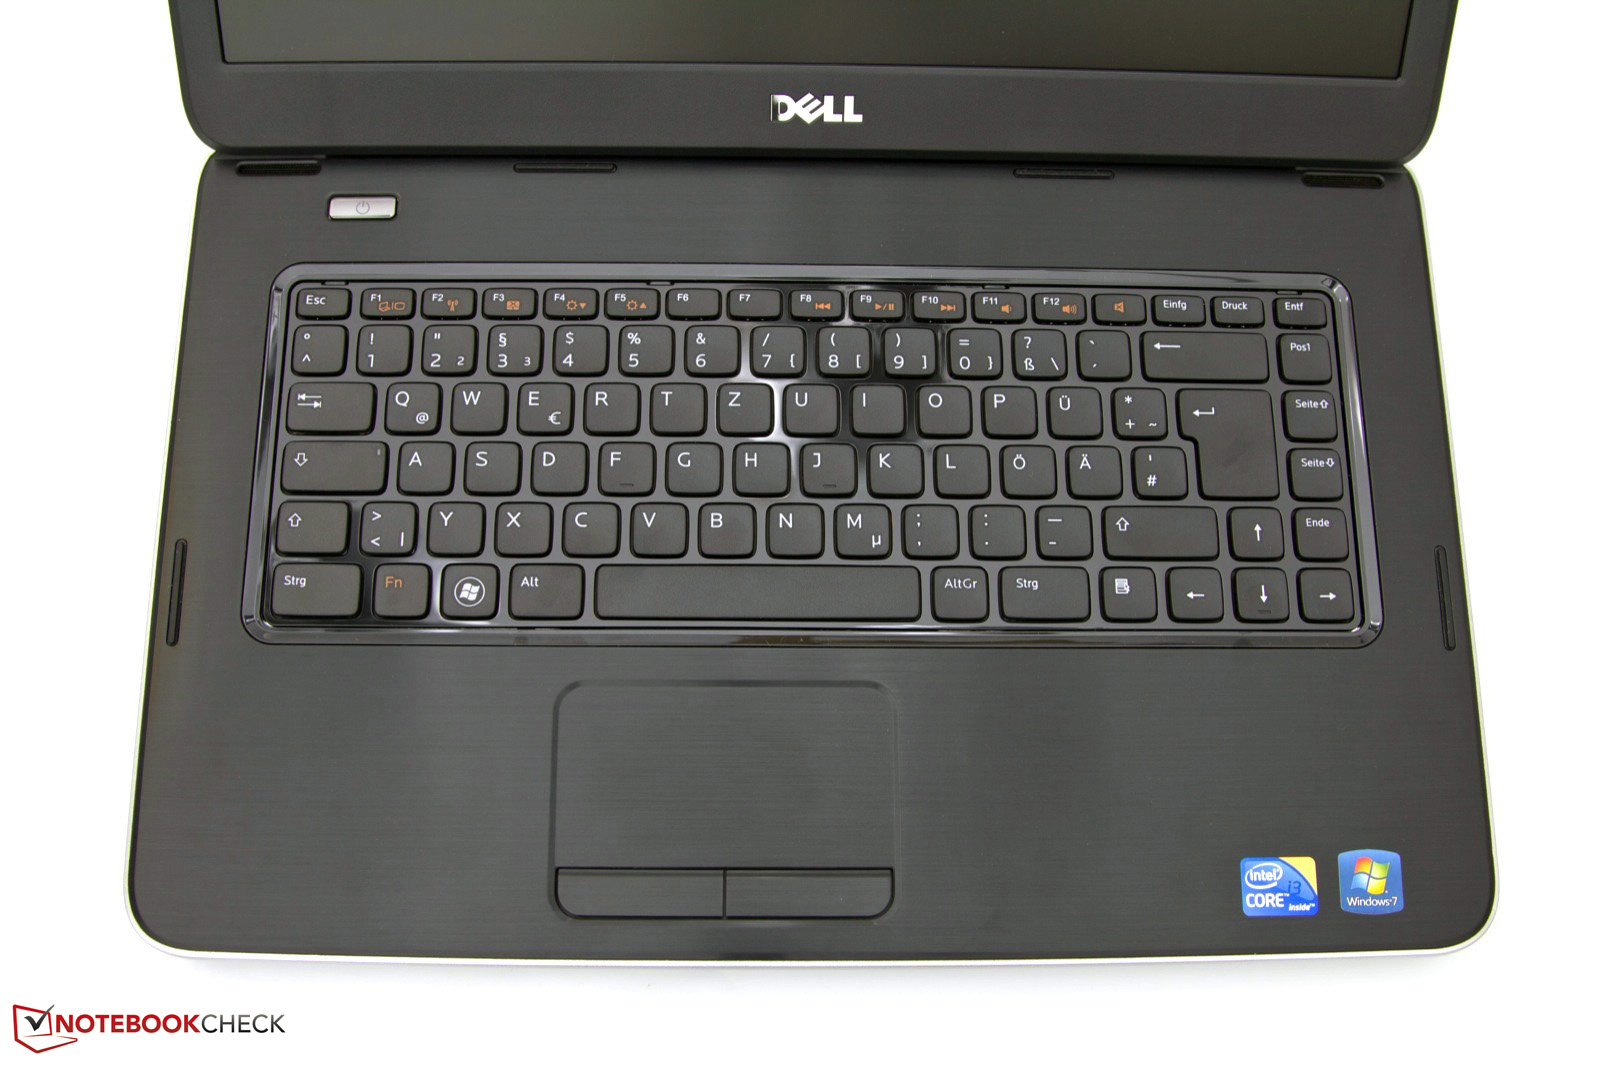 Dell Vostro 1540 Notebook Digital Delivery Windows 8 X64 Driver Download